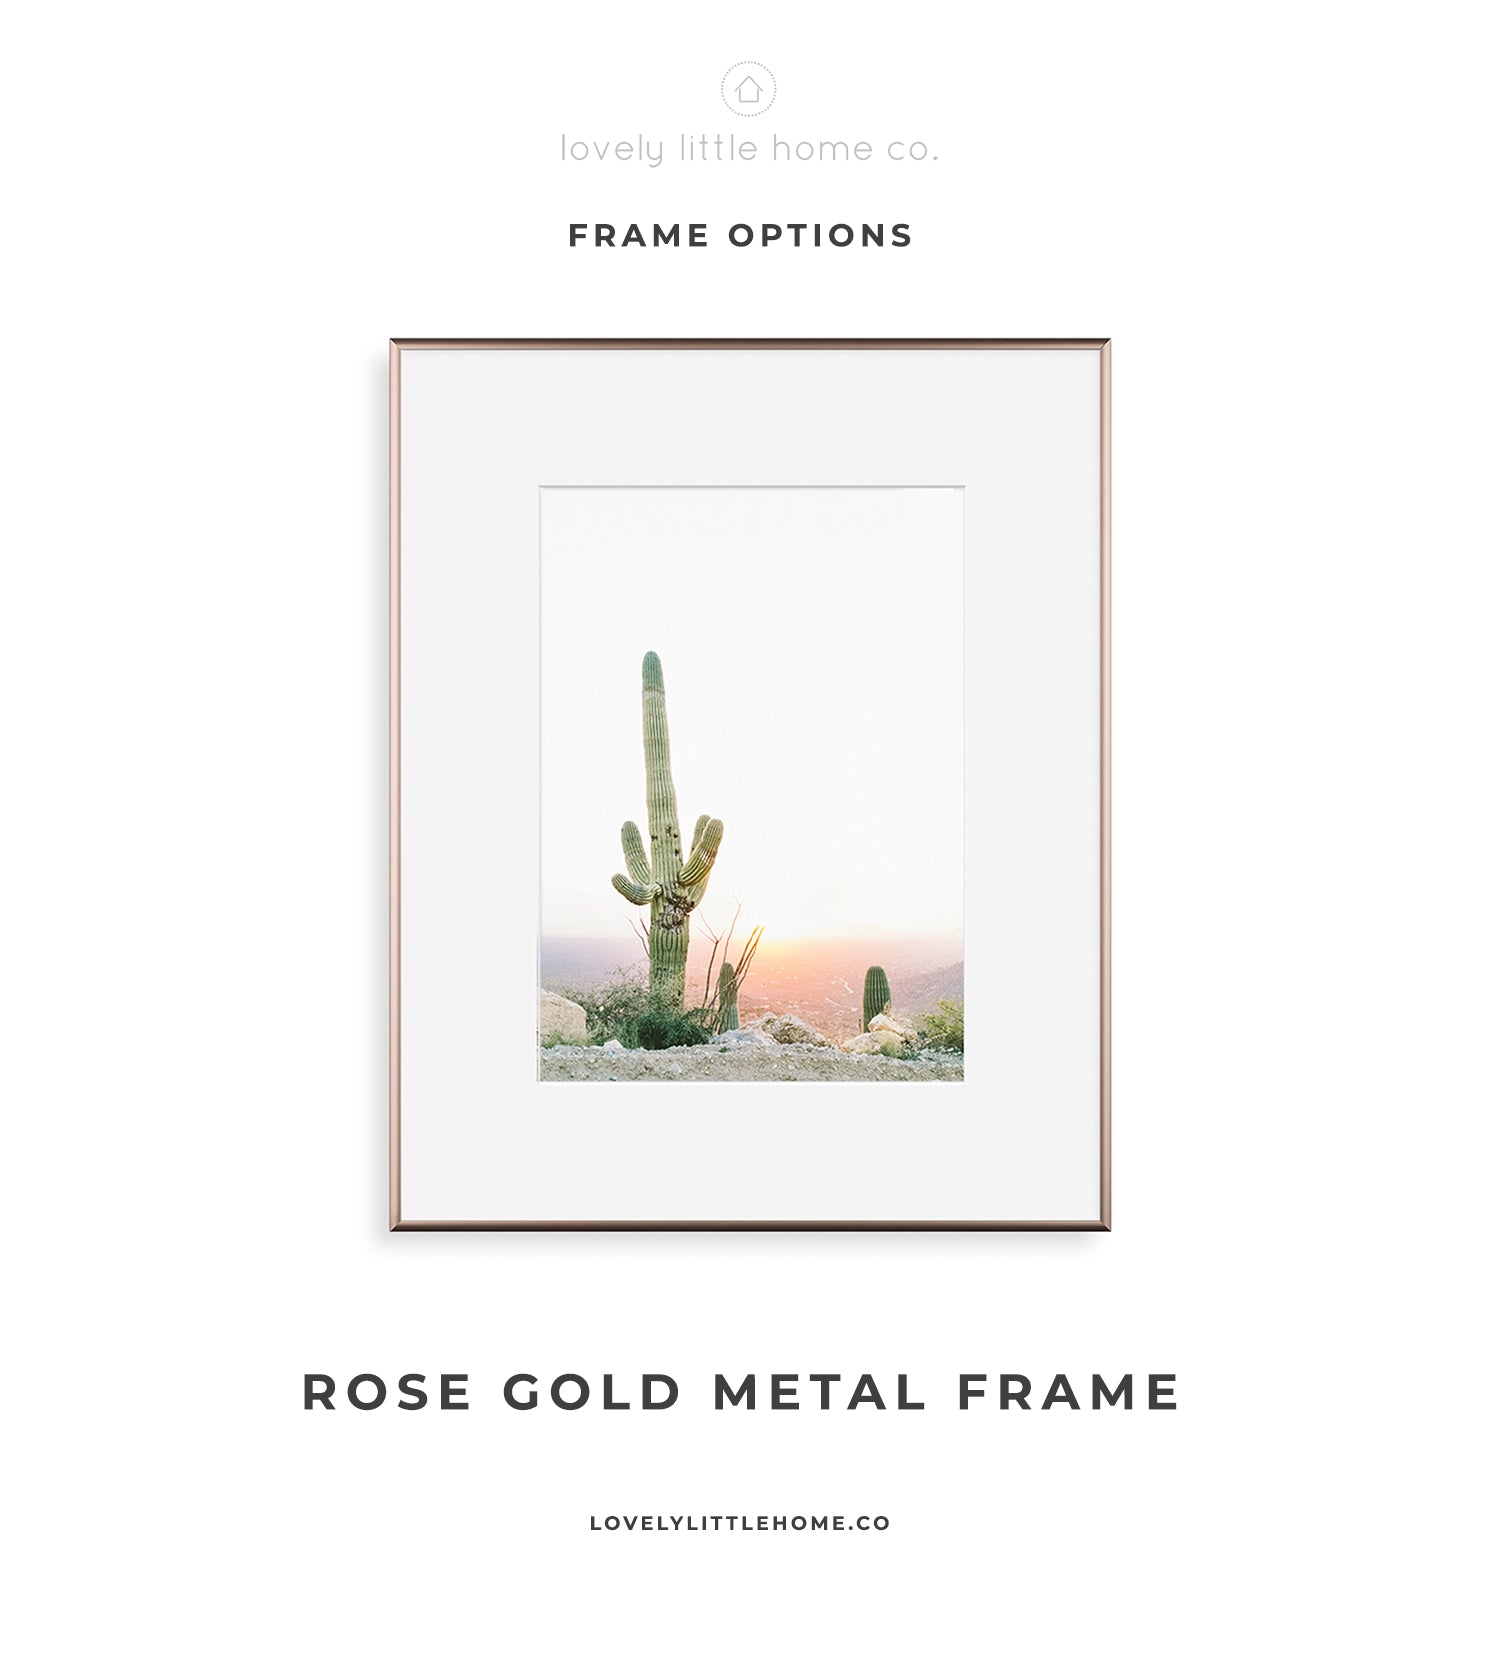 rose gold minimalist gallery wall frame home decor photo